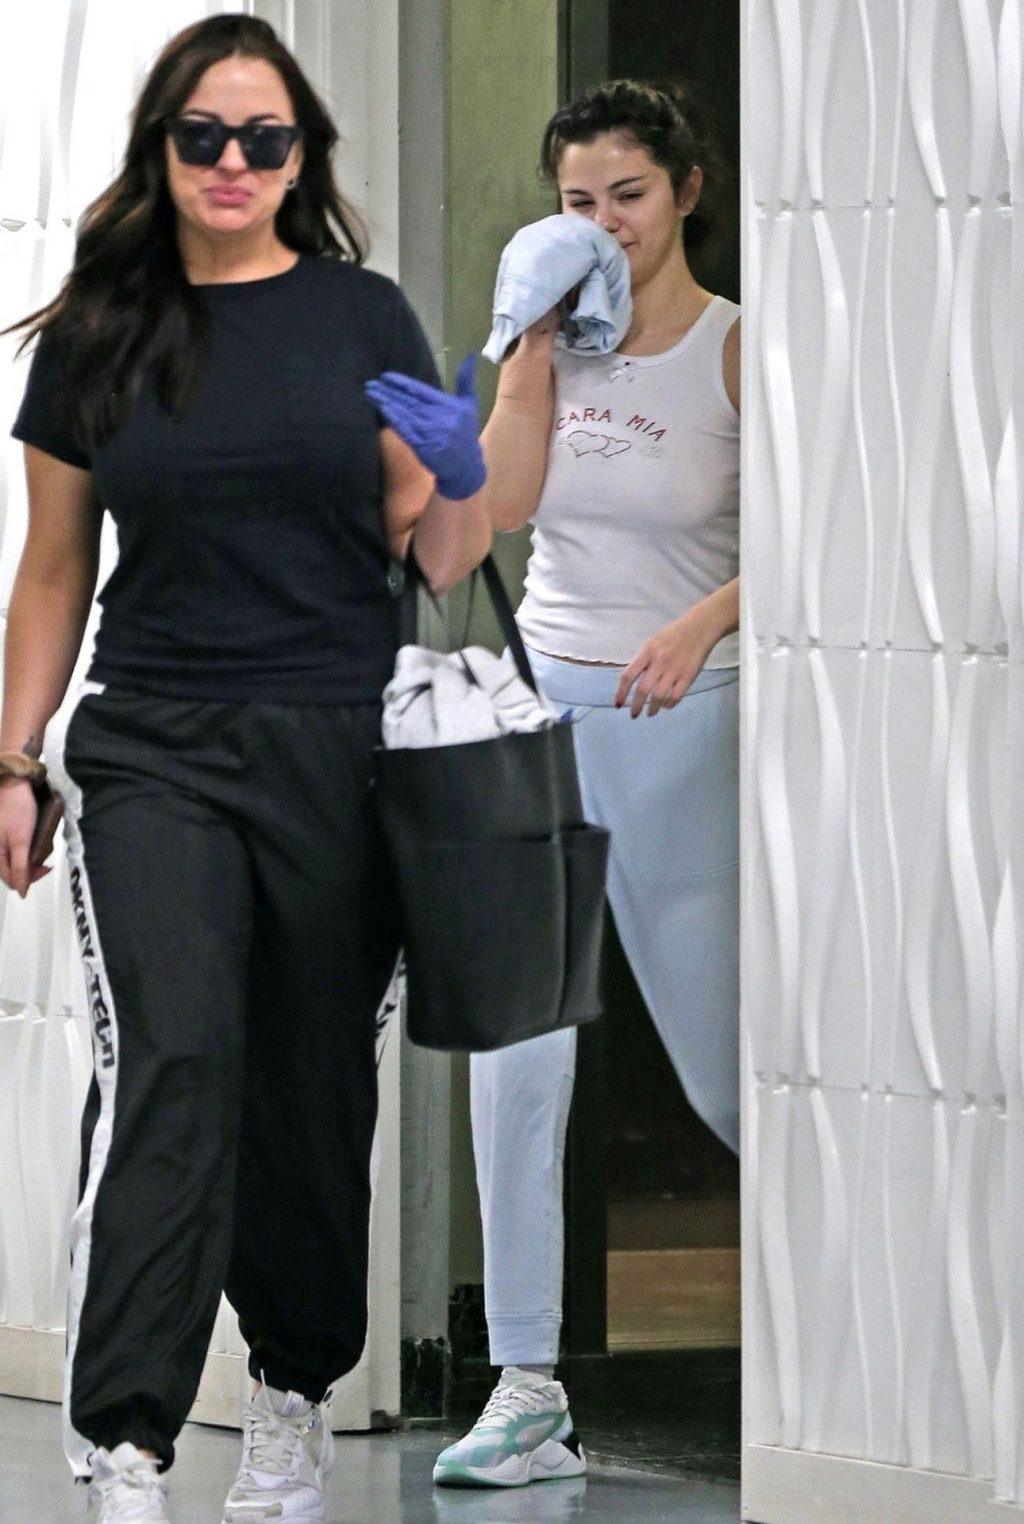 Braless Selena Gomez Visit to the Doctor's Office in Los Angeles (11 Photos)